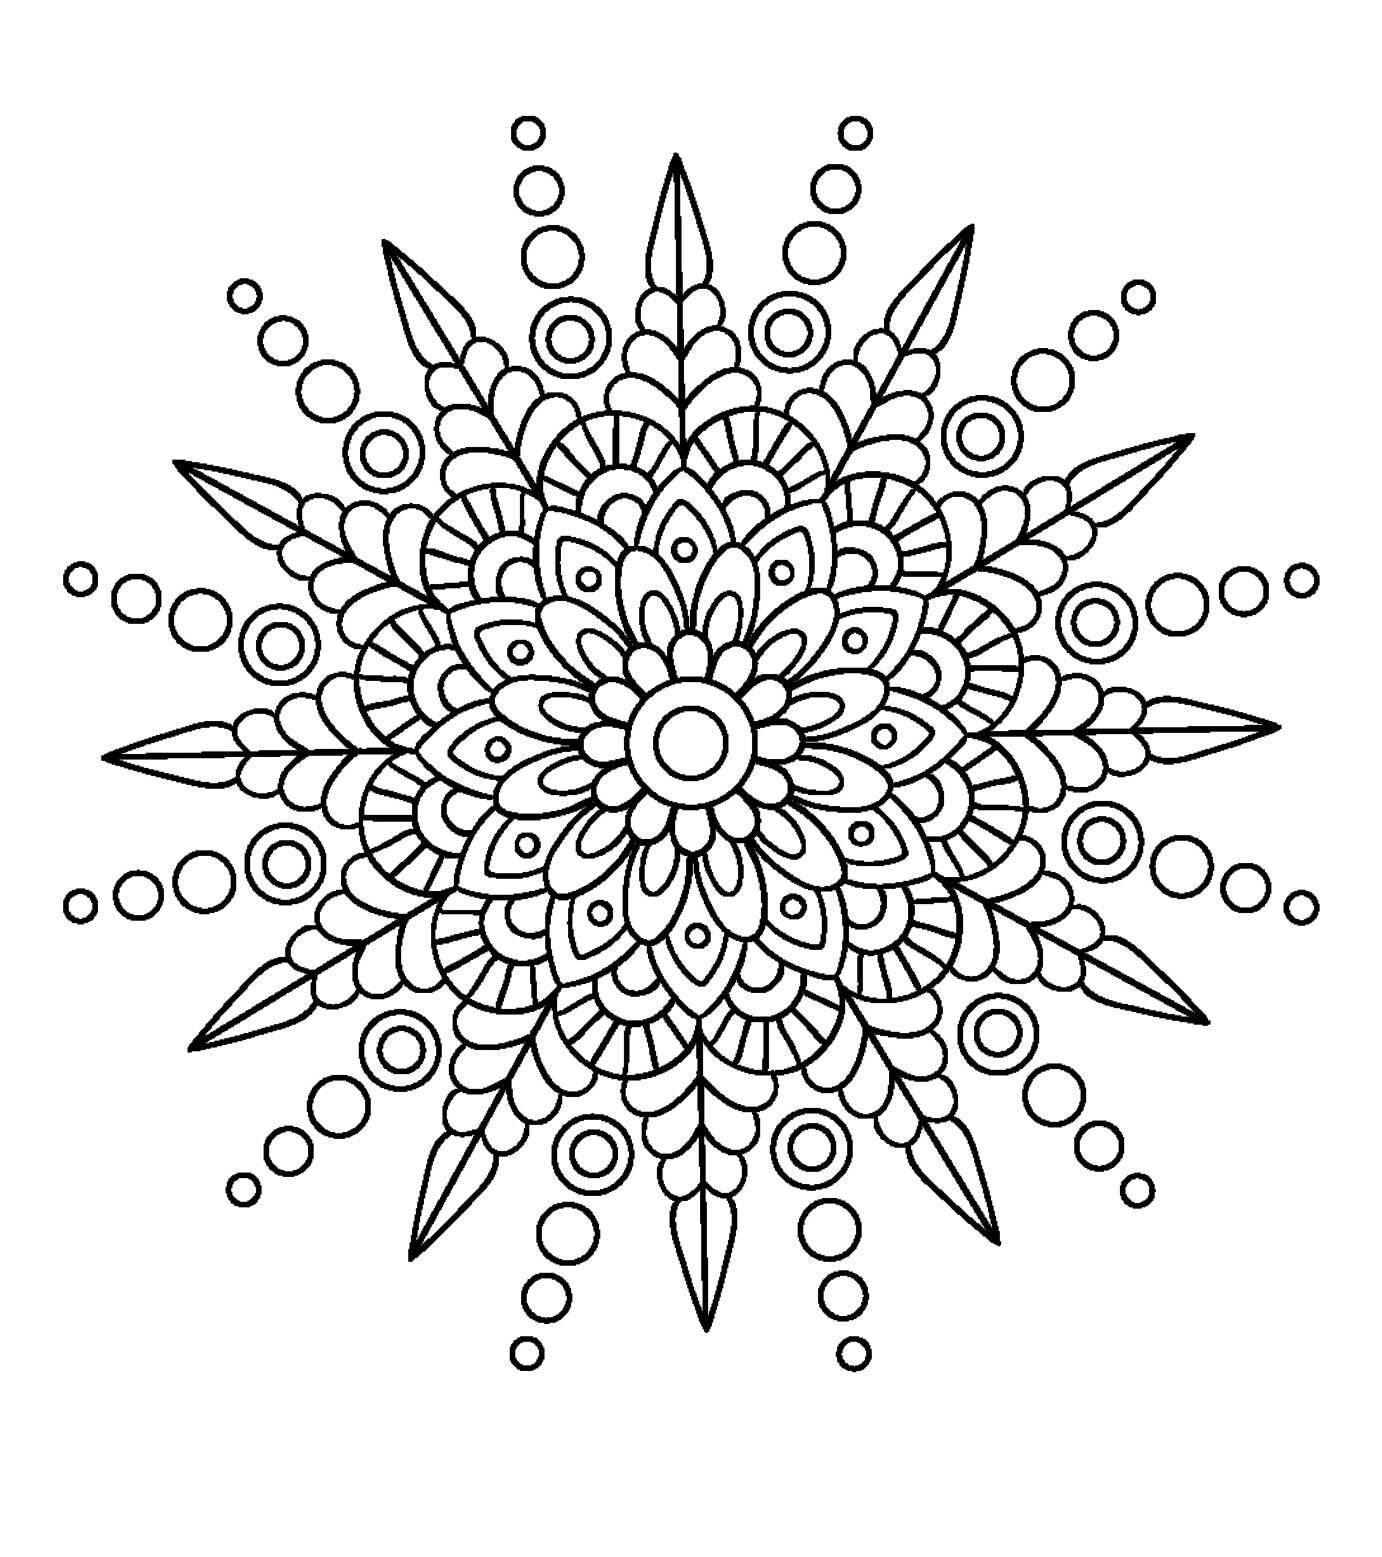 Spikey Mandala Simple Mandala Mandala Coloring Pages Mandala Drawing